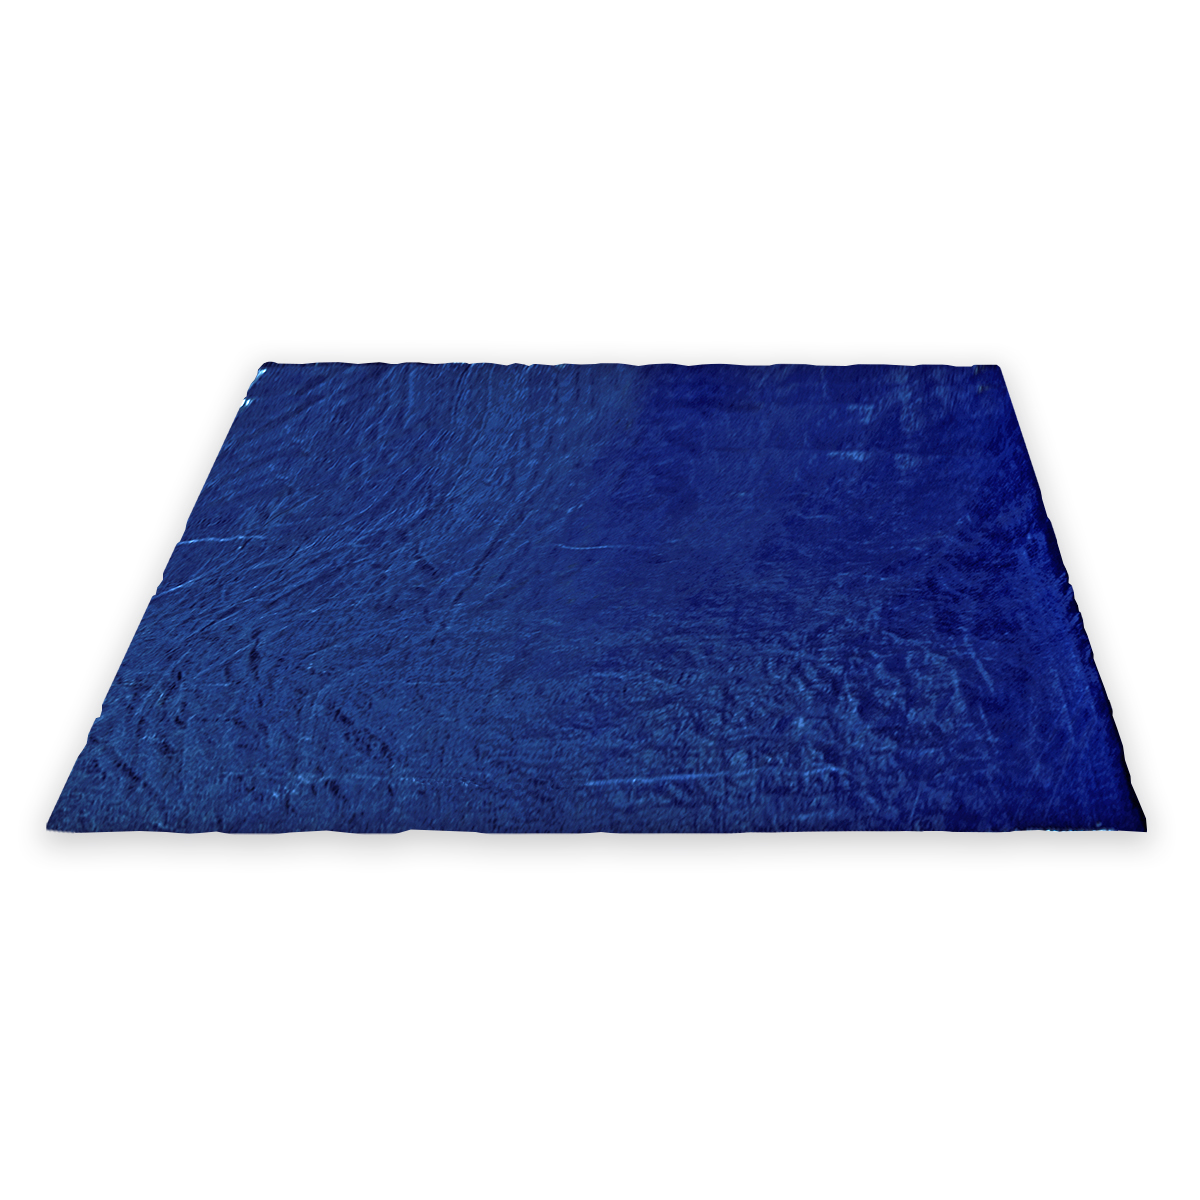 Equipment Protection Mats image